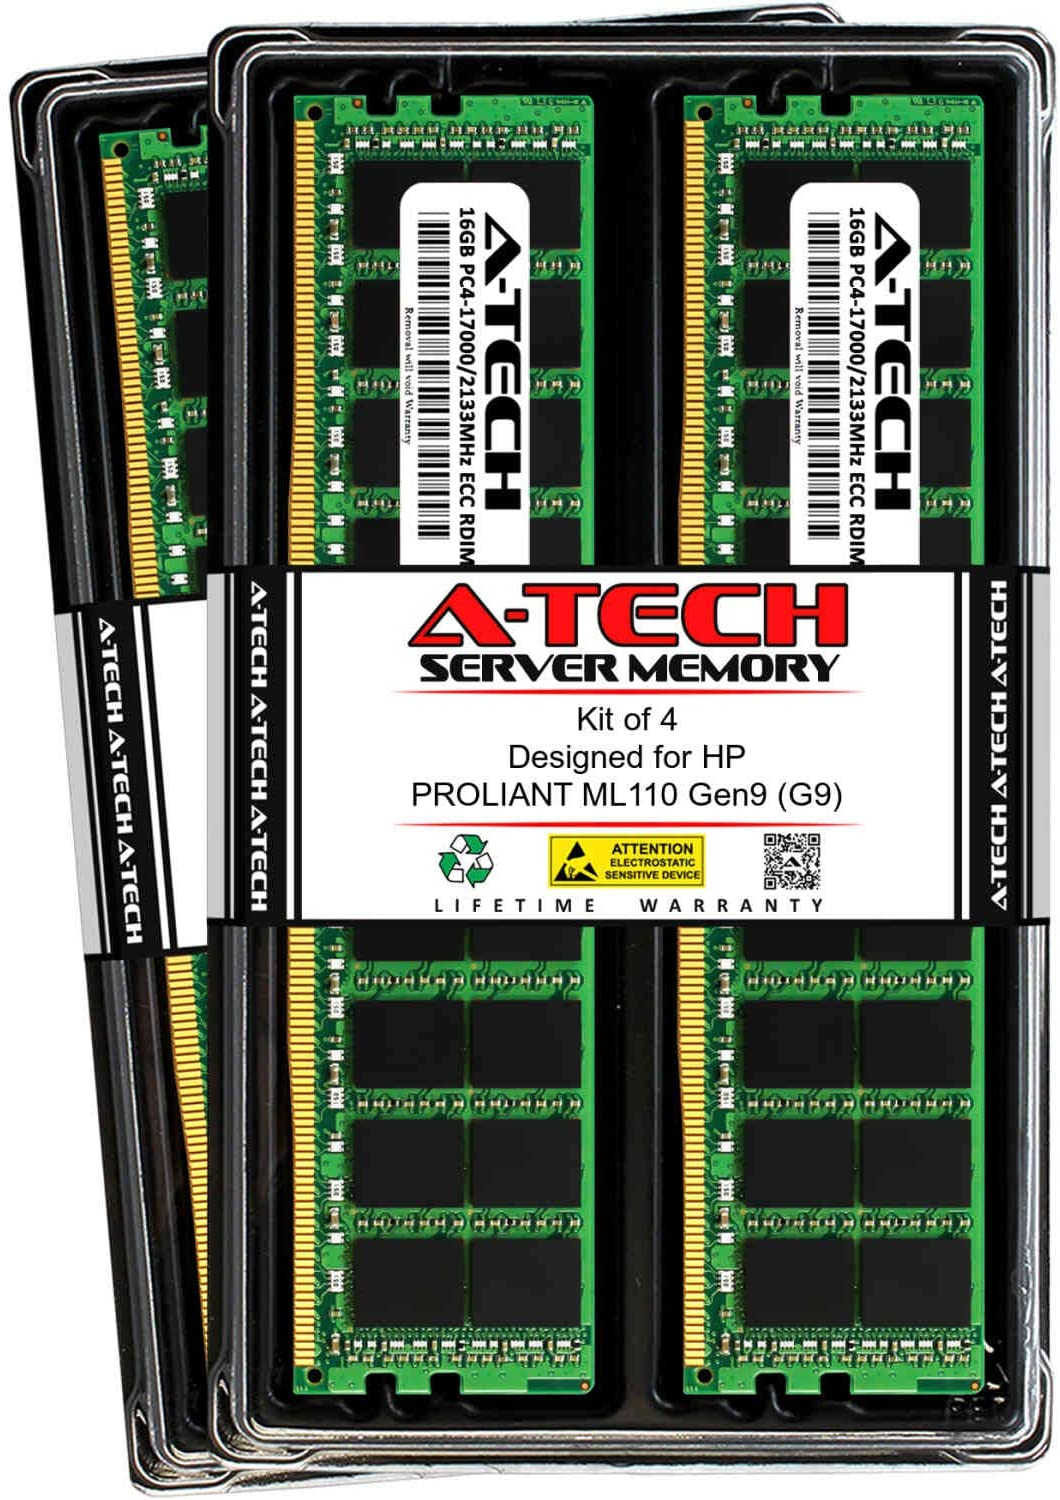 A-Tech 64GB (4X 16GB) RAM for HP PROLIANT ML110 Gen9 (G9) | DDR4 2133MHz ECC-RDIMM PC4-17000 2Rx4 1.2V 288-Pin ECC Registered Server Memory Upgrade Kit